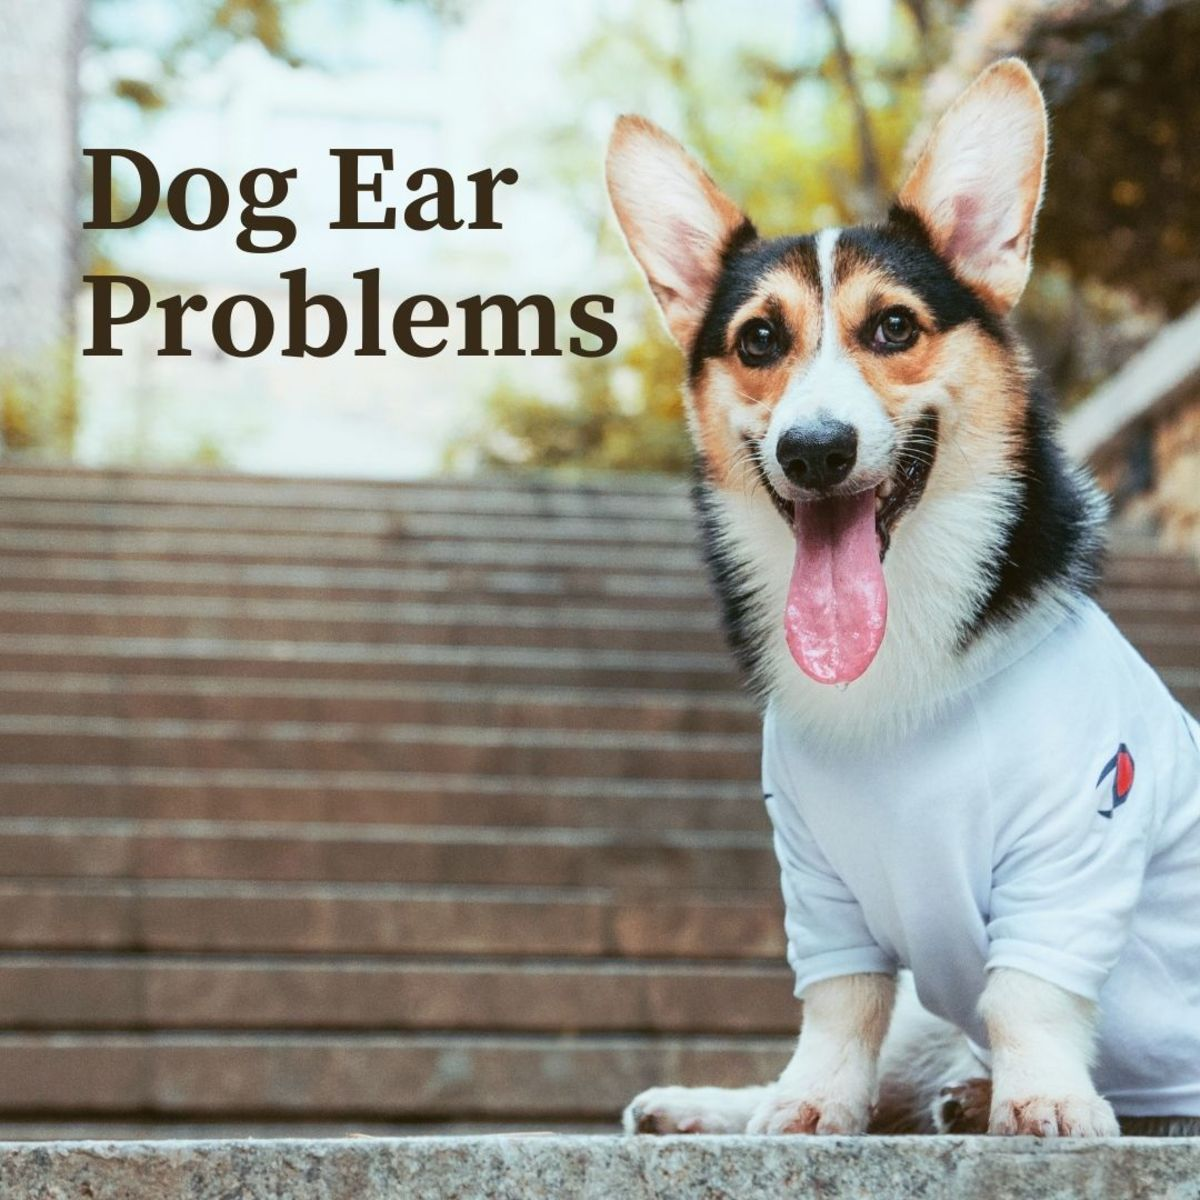 Common dog ear problems and causes, symptoms and treatment